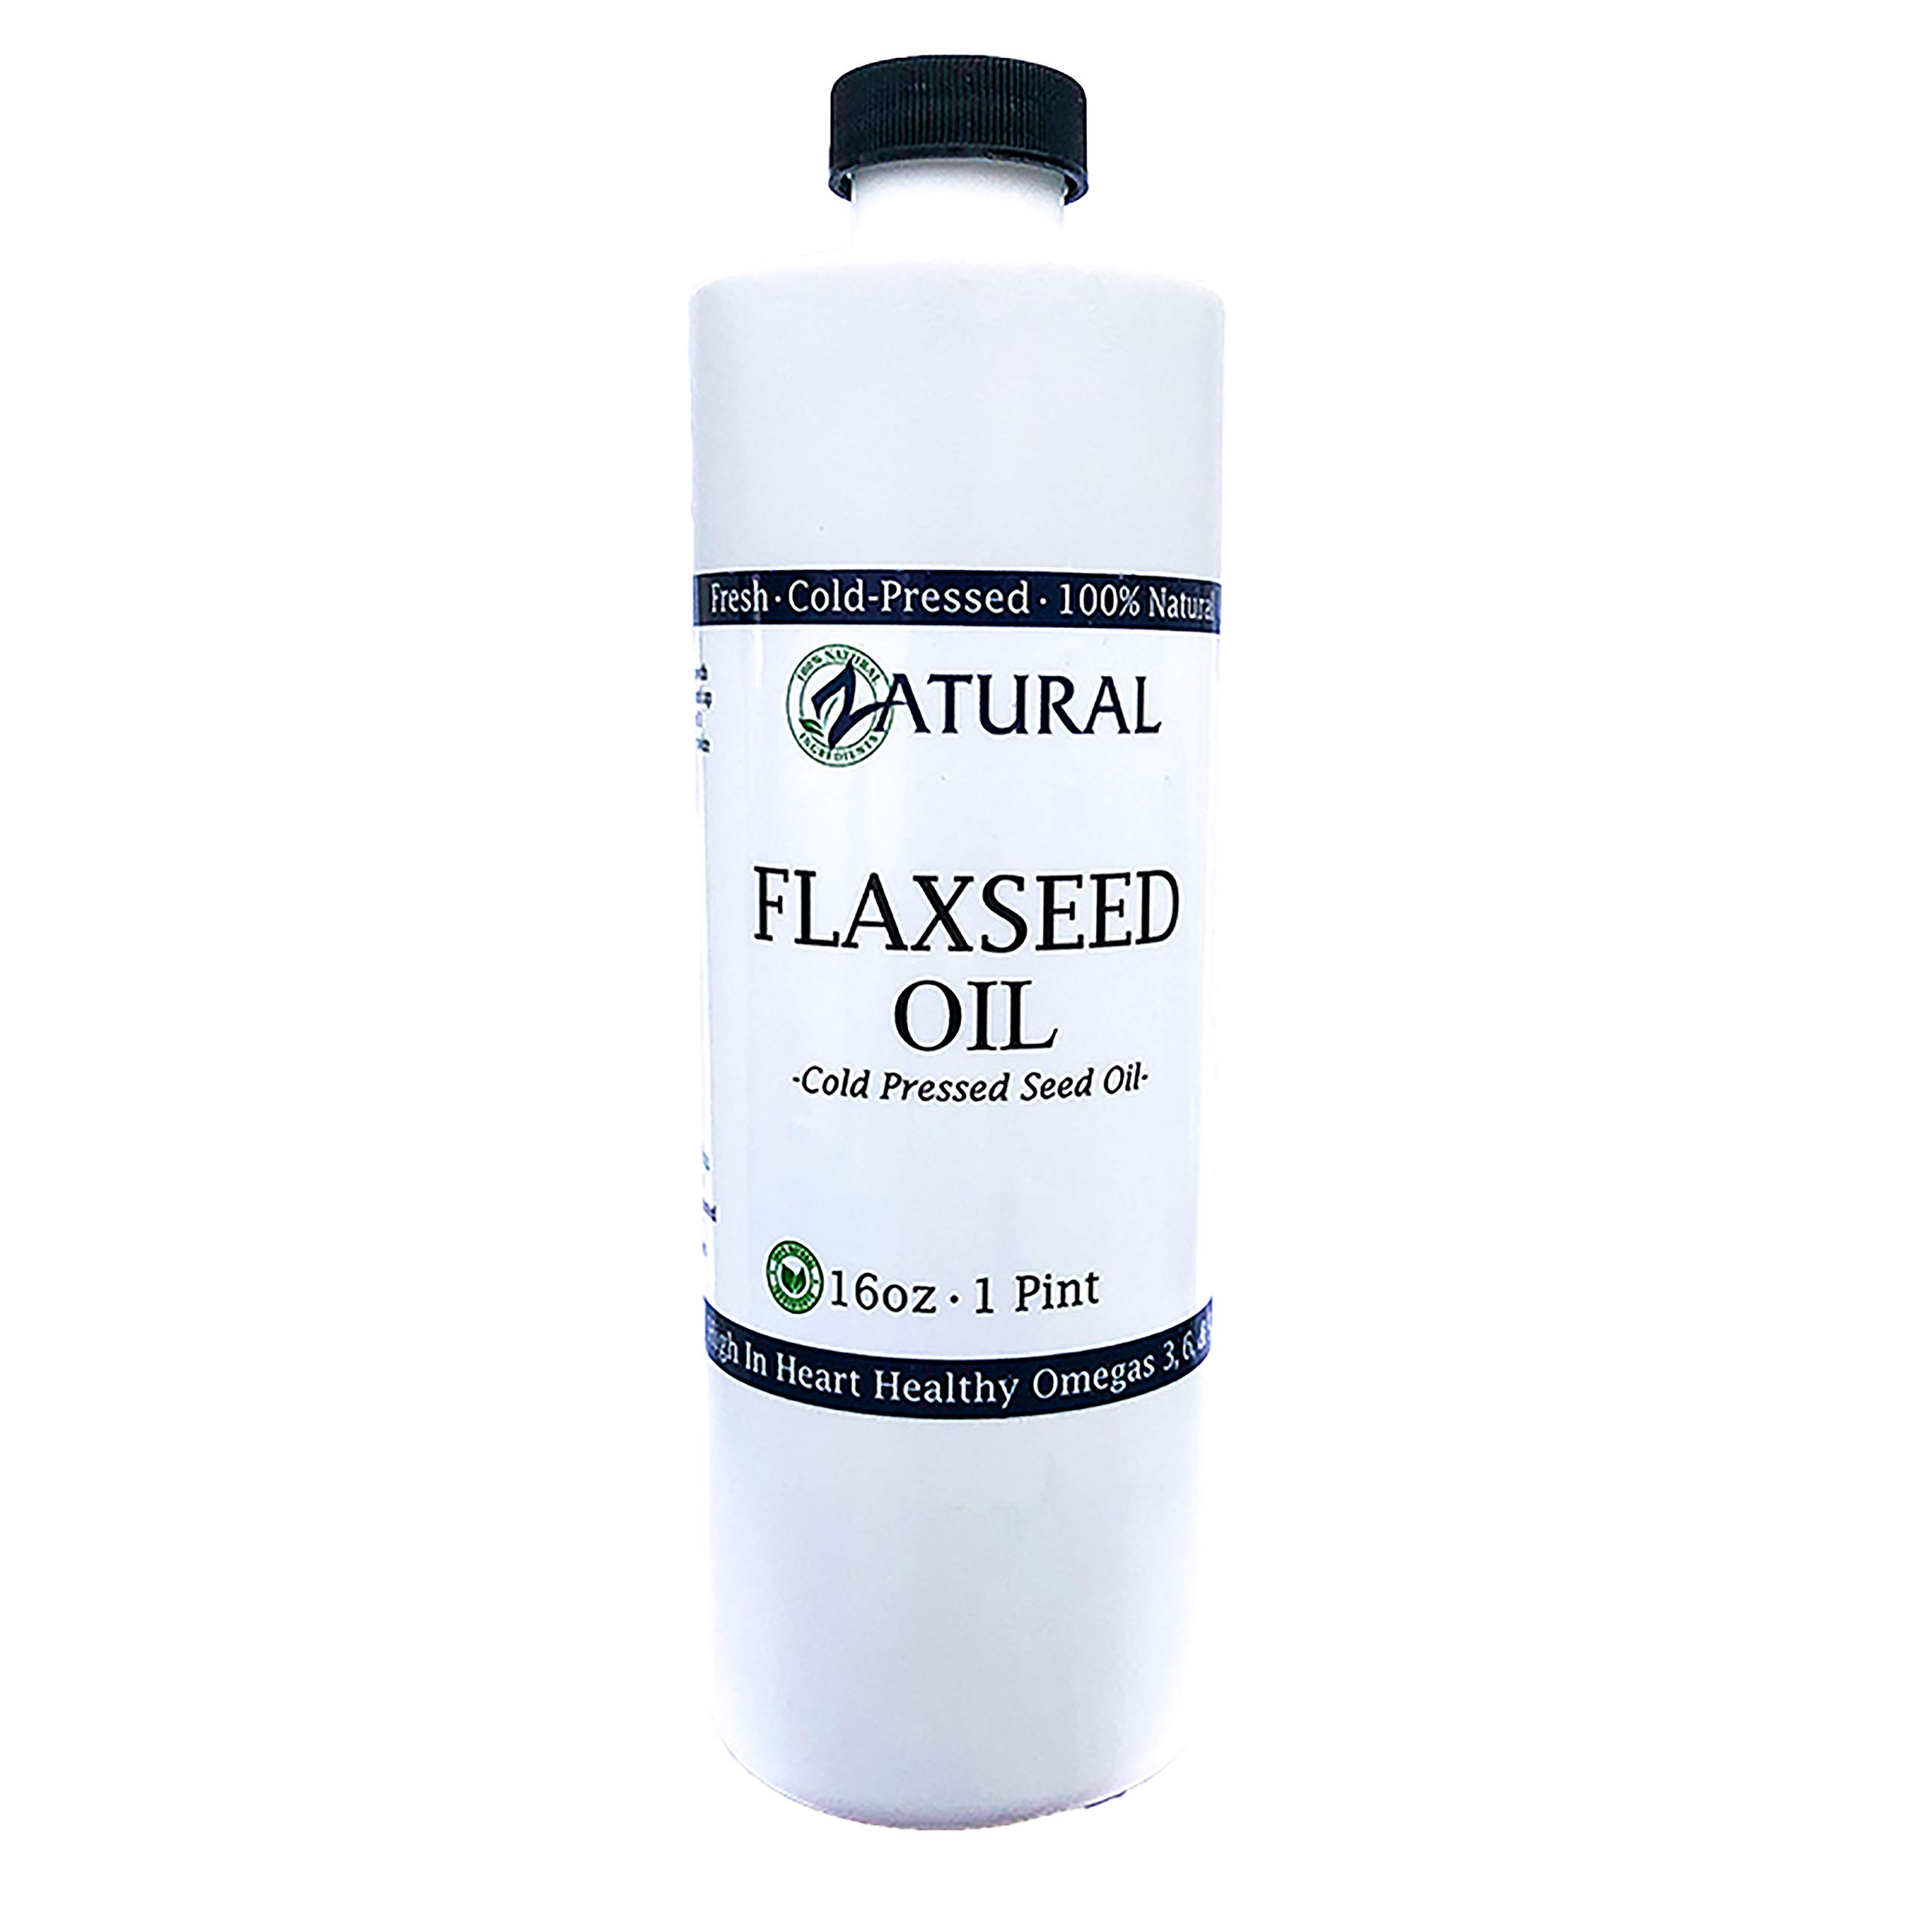 FlaxSeed Oil - 100% Pure Flax Seed Oil - 0 Additives - 0 Fillers - Cold Pressed - Unrefined (16 Ounce)